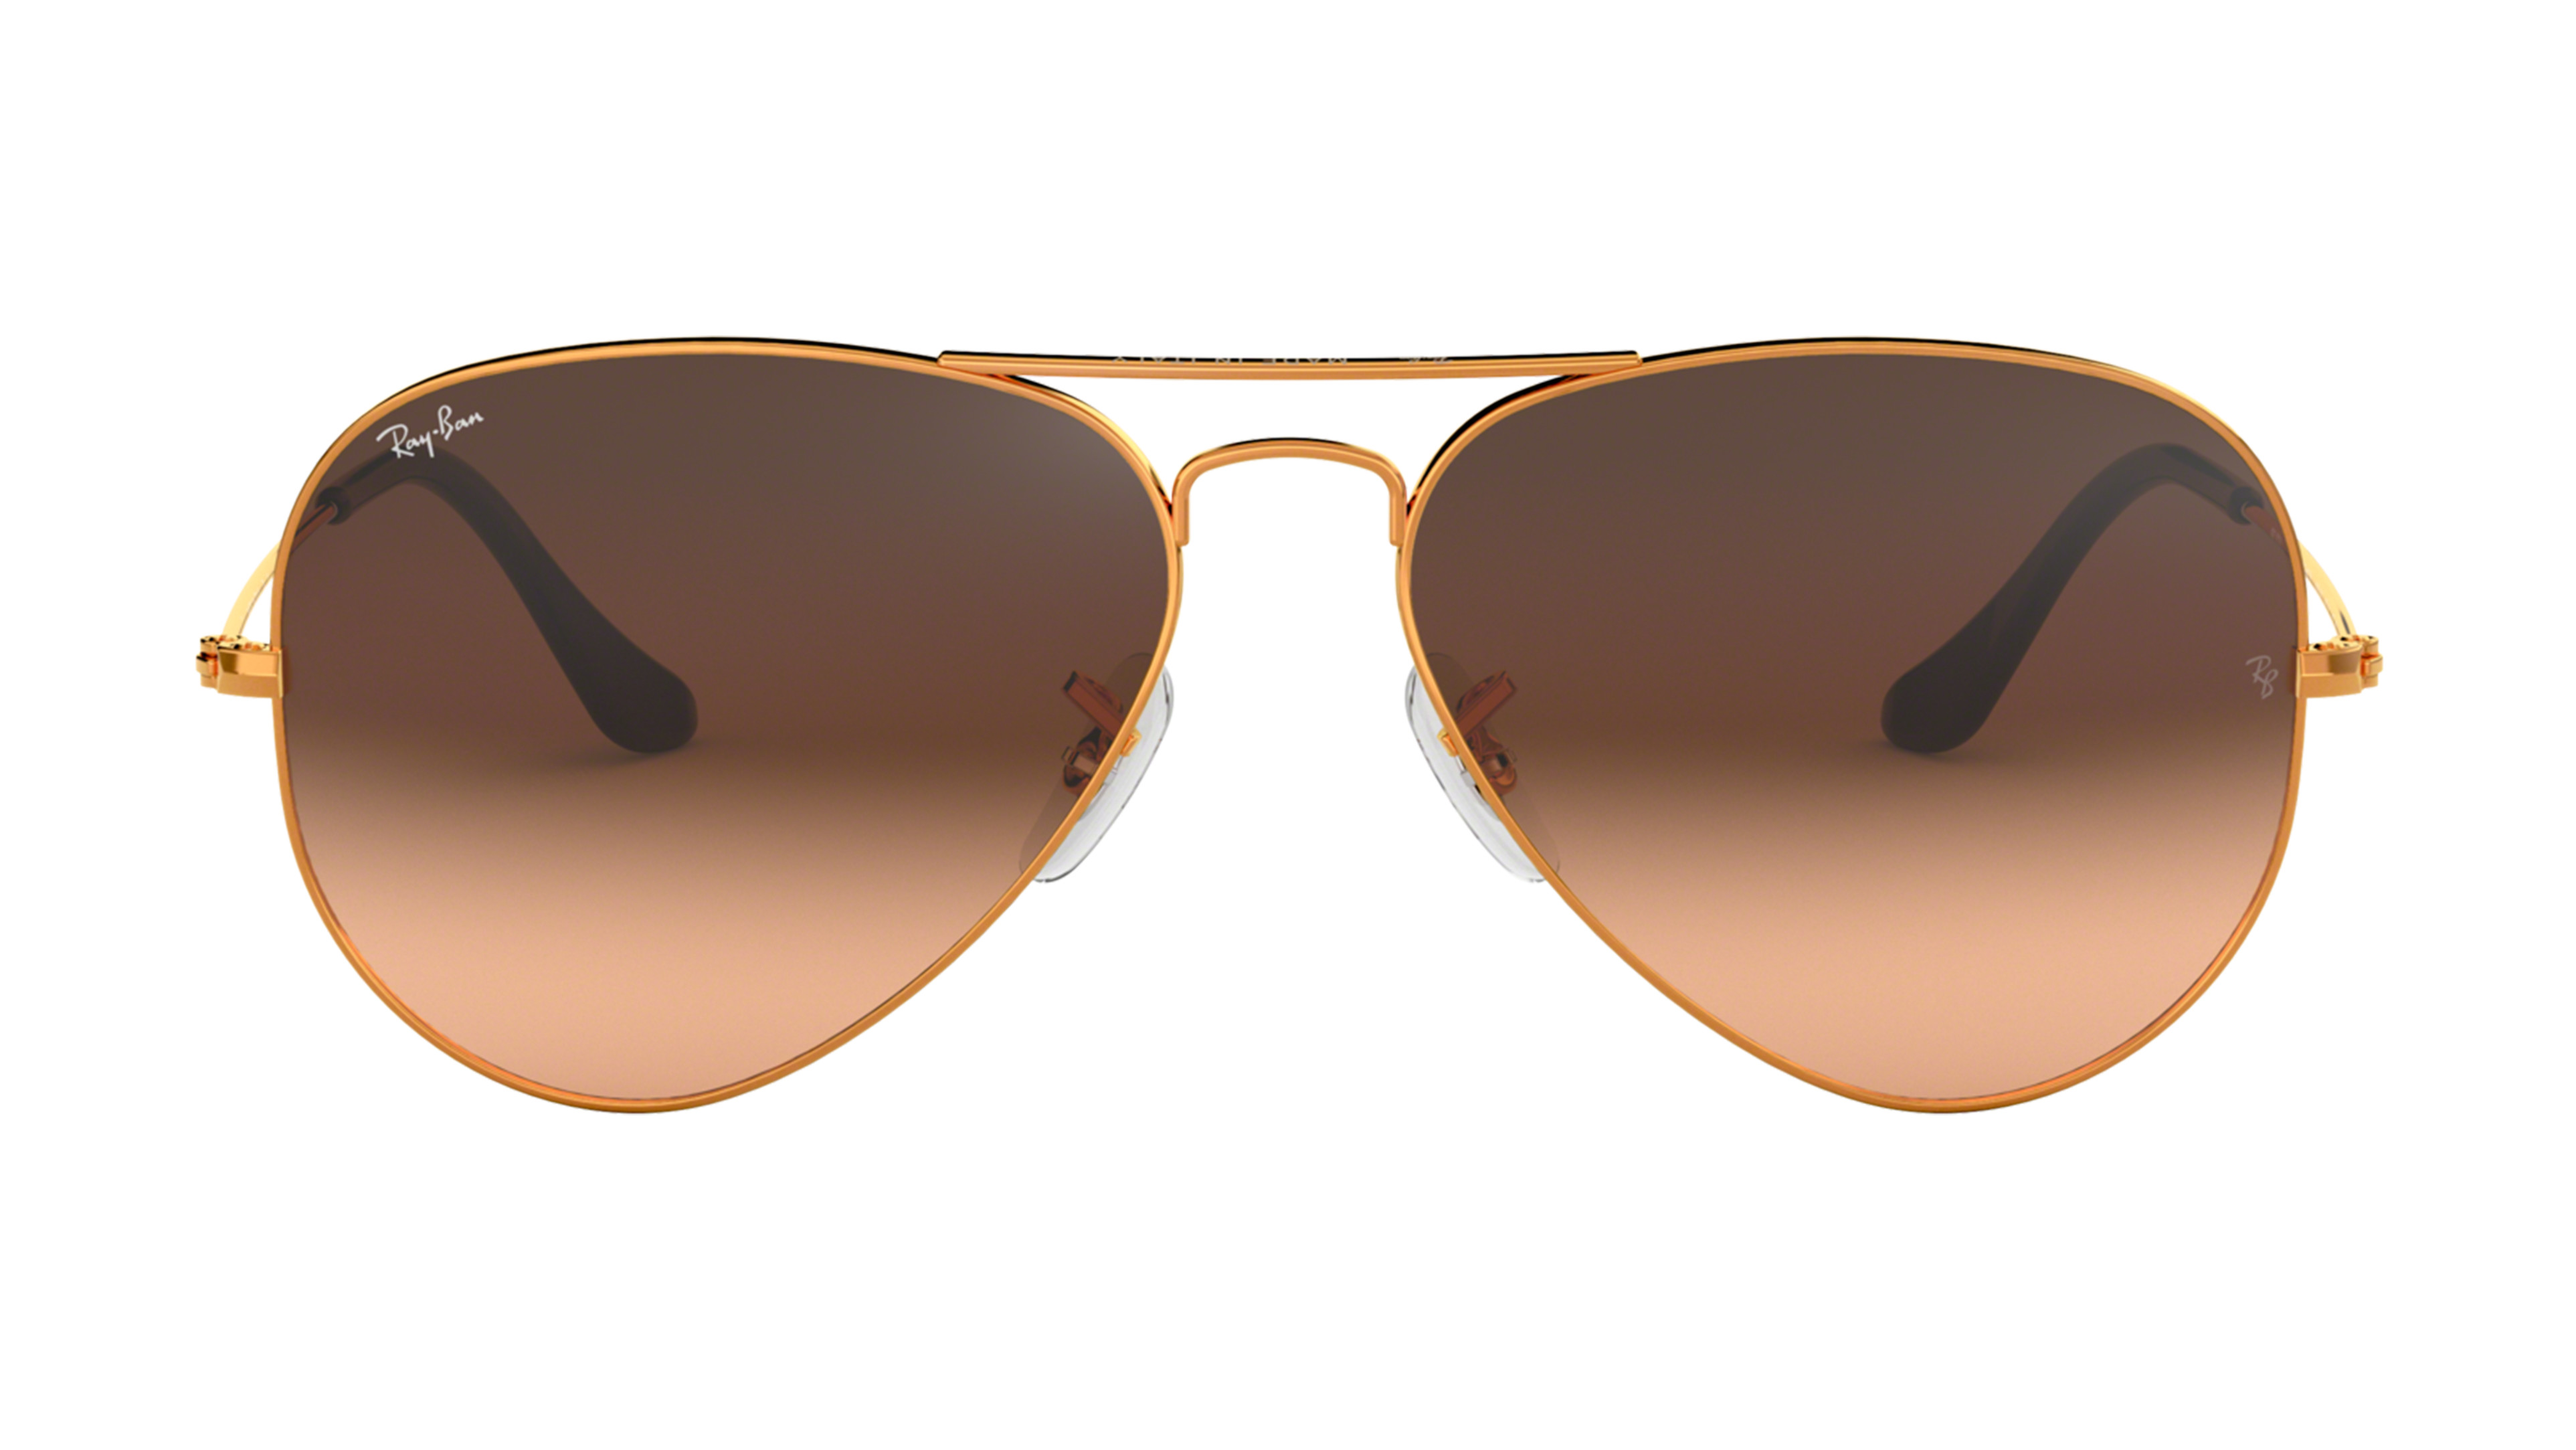 8053672731651-front-Ray-Ban-0RB3025-9001A5-Pilot